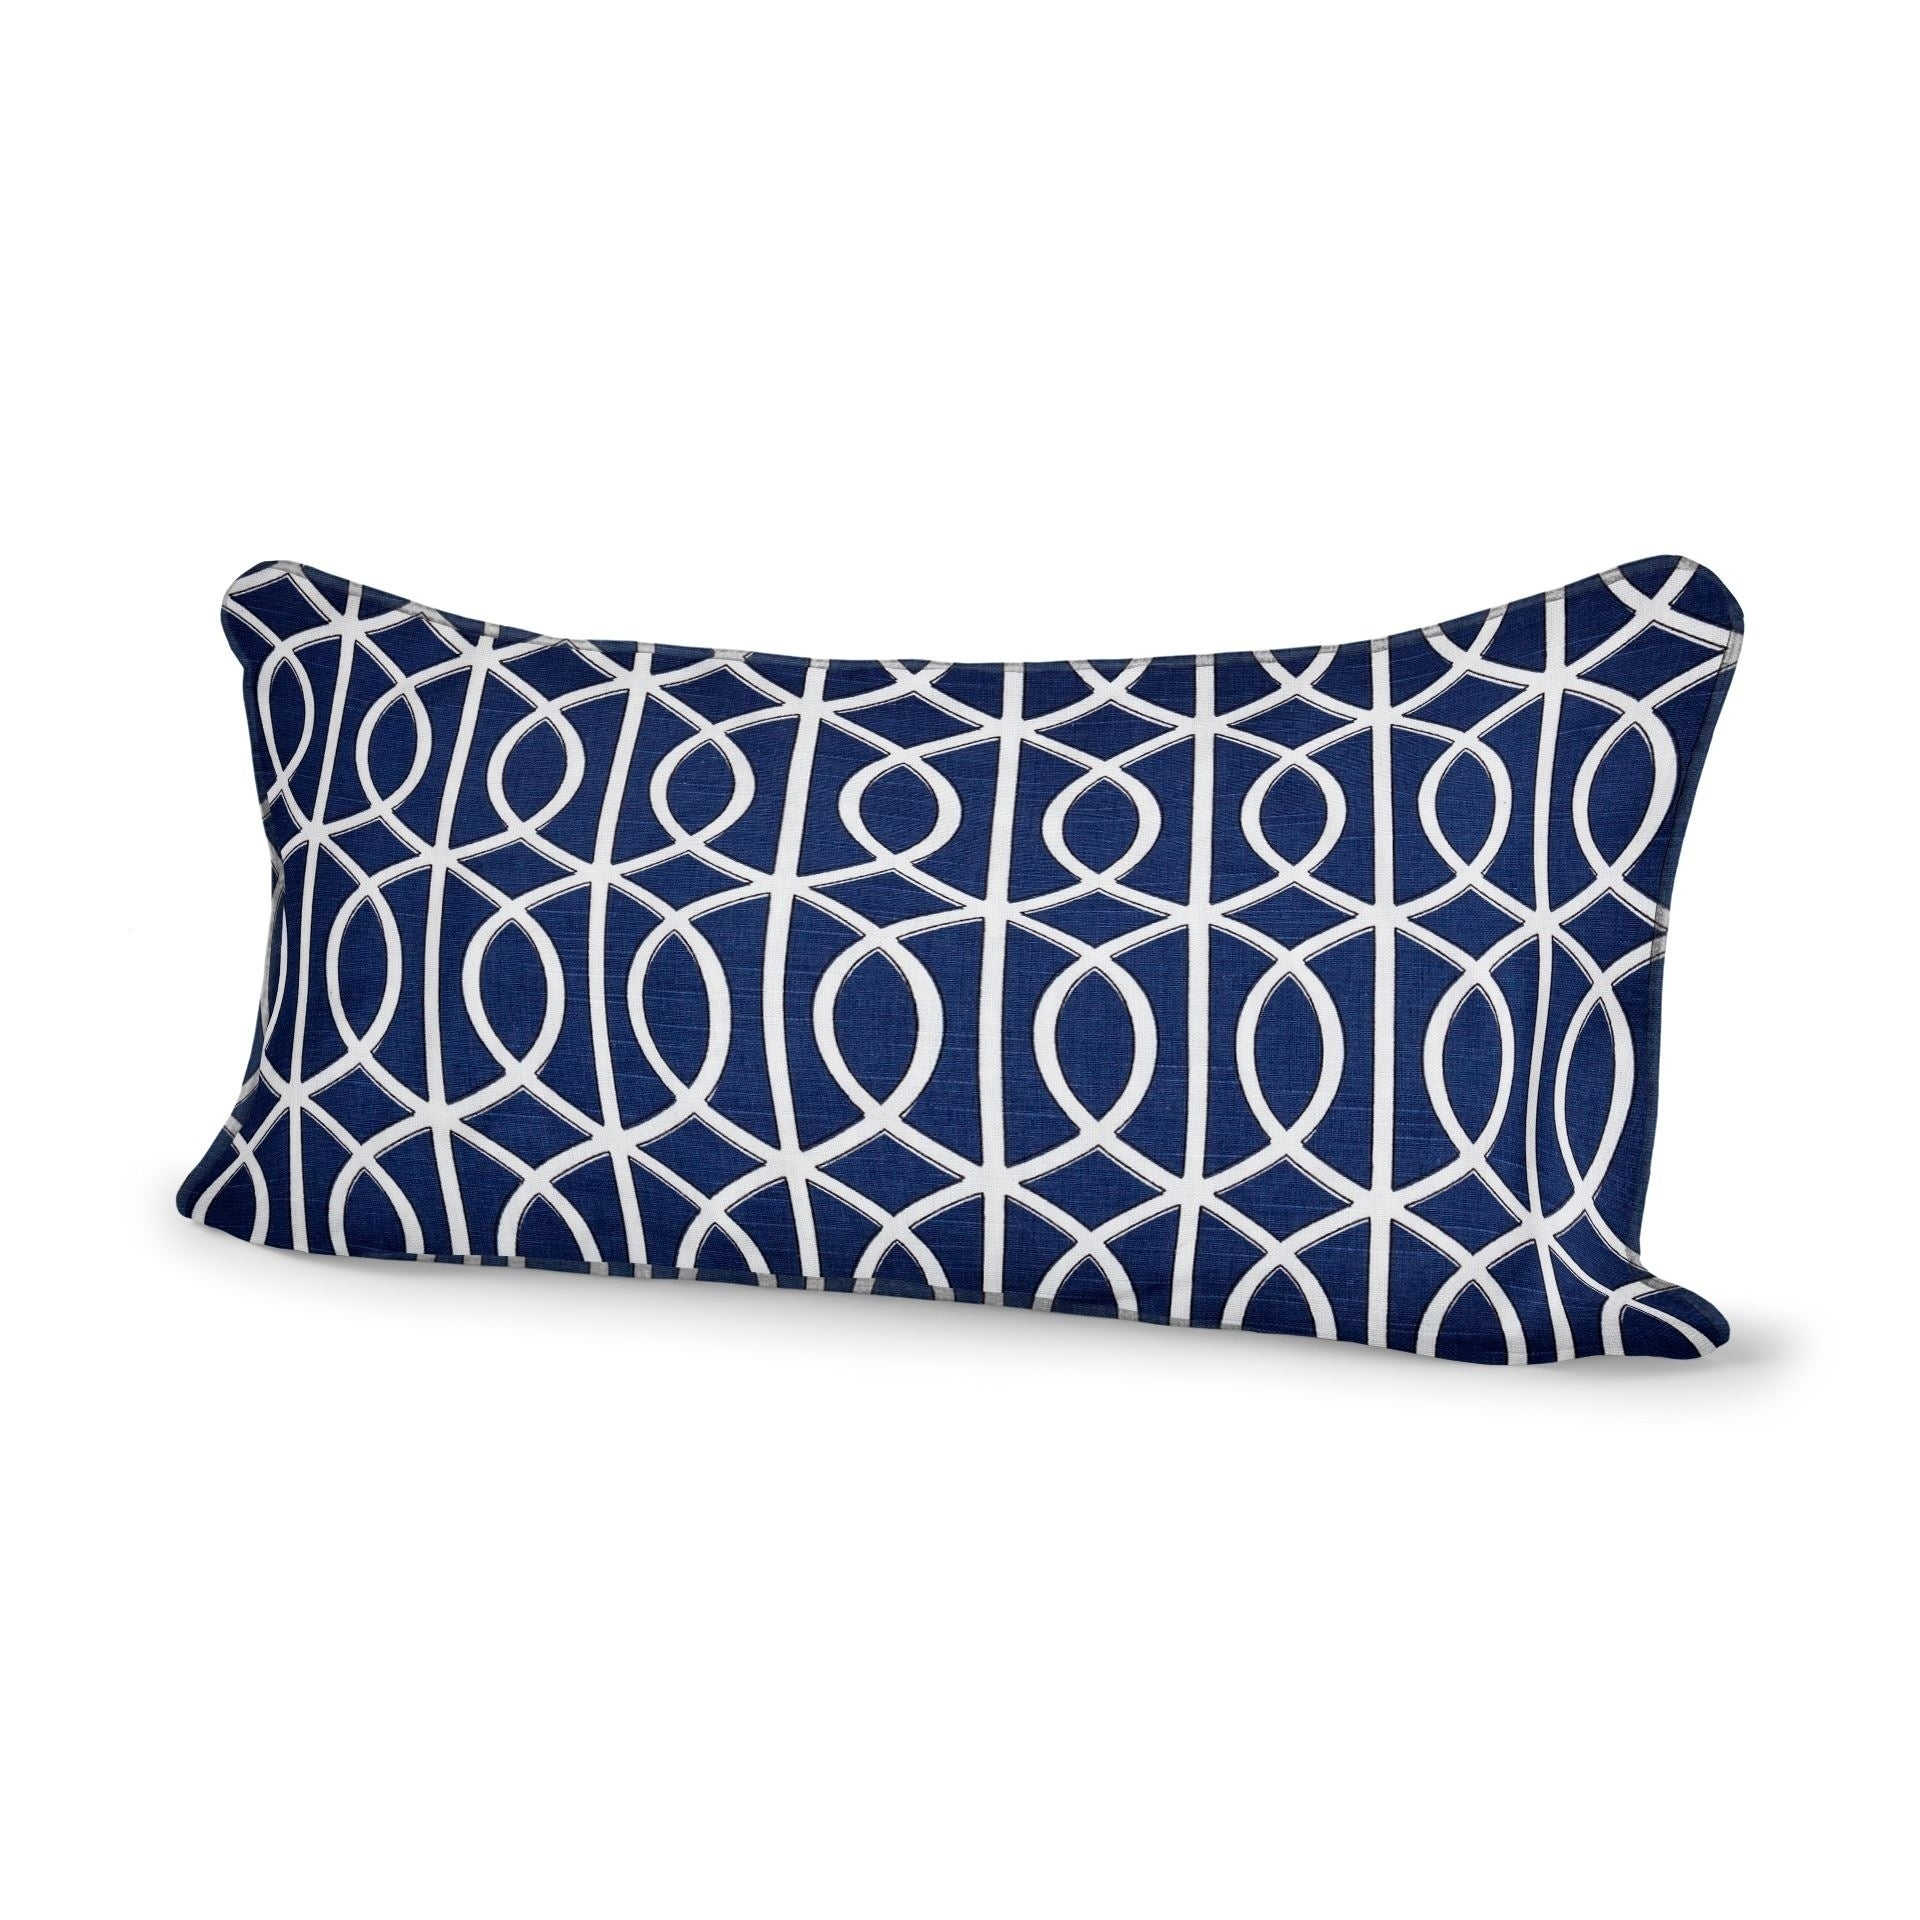 Mercana Hyacinth IV 14 x 26 (cover only) Decorative Pillow